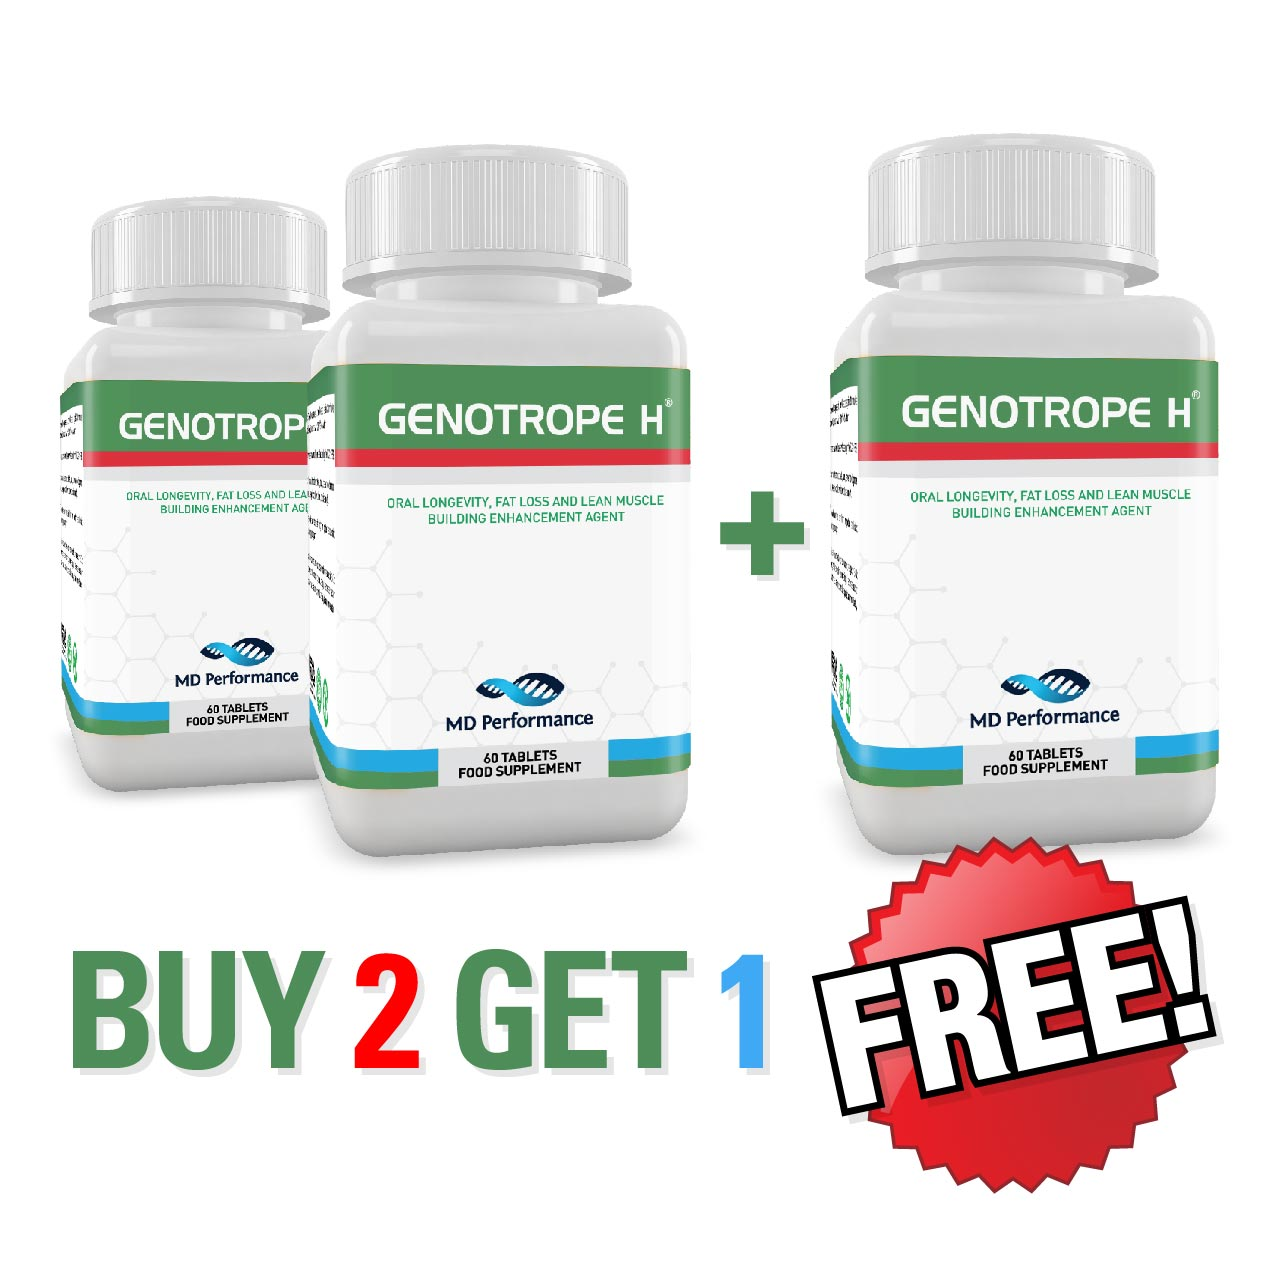 Genotrope H* - Buy Two Get One Free